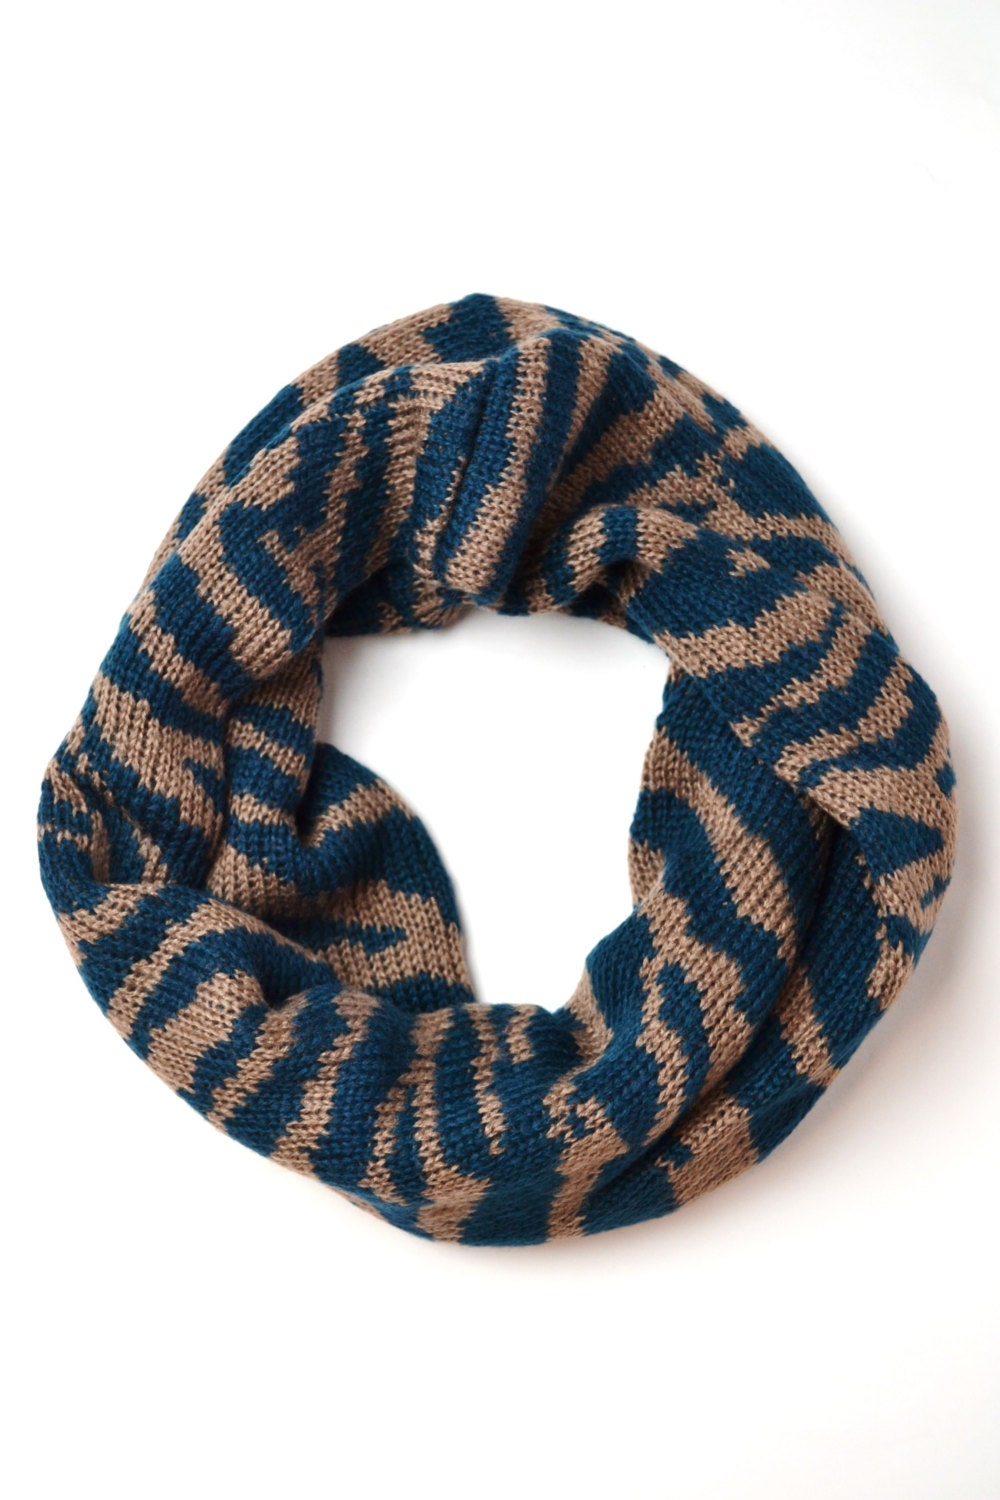 images Accessory Trends: The Snood